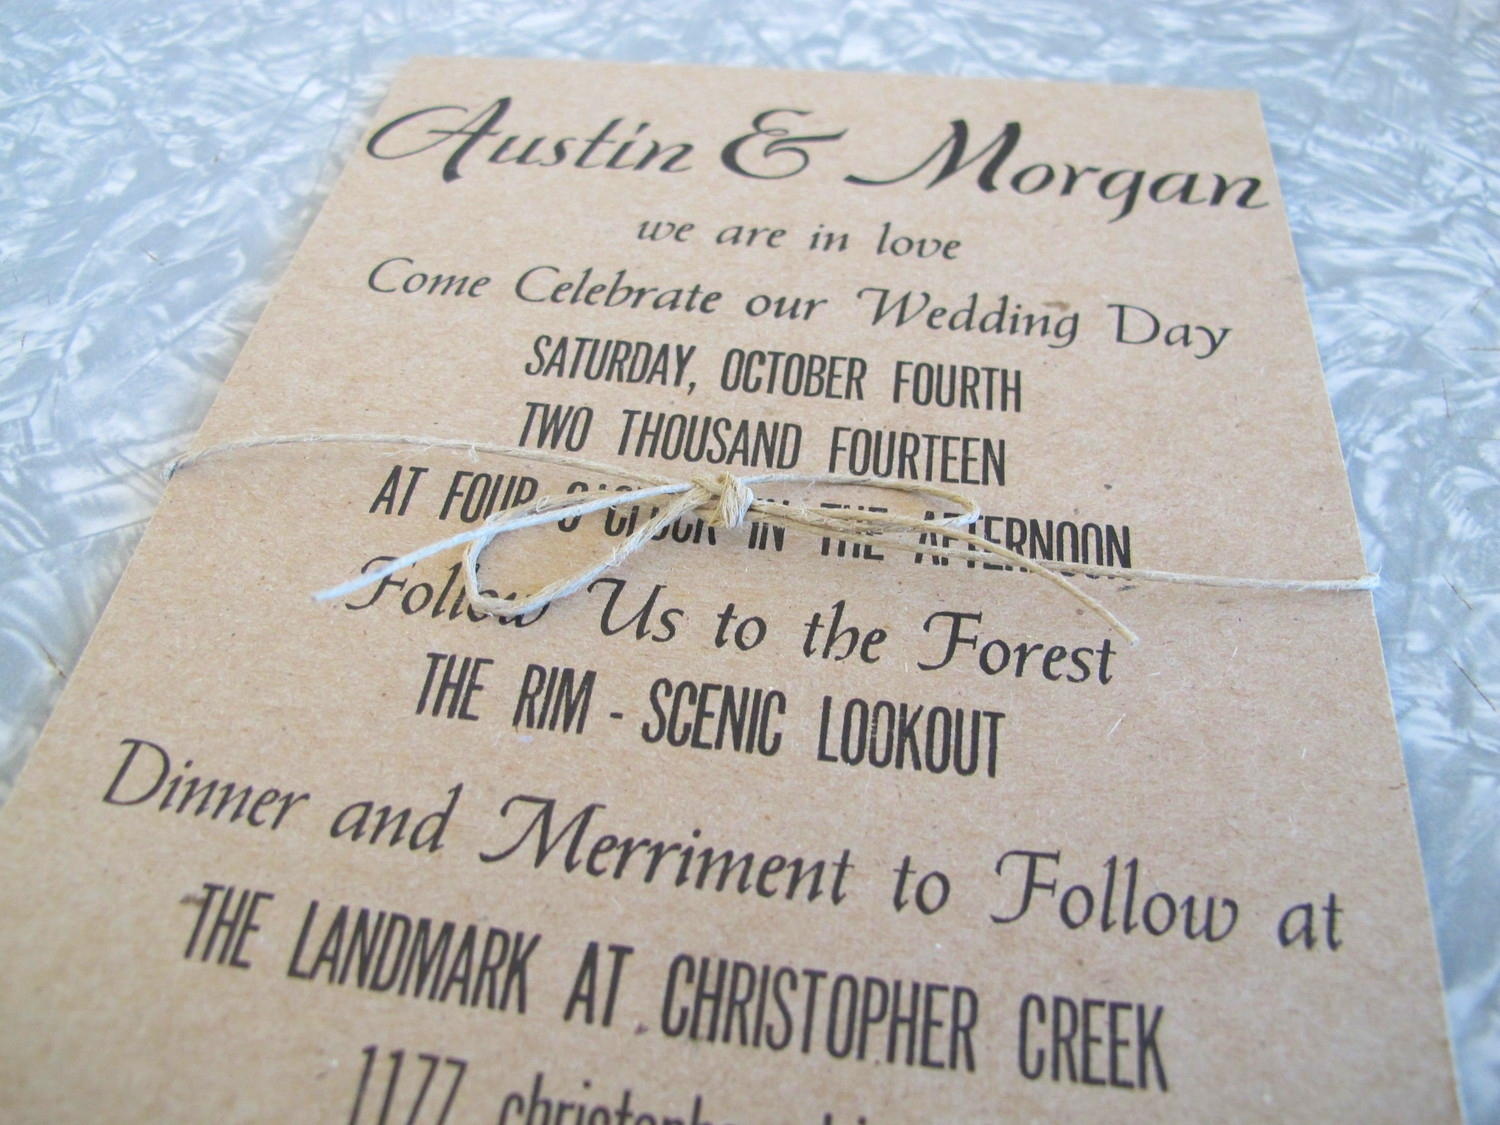 Letterpressed wedding invitation on chipboard.  Wrapped in a simple piece of twine.